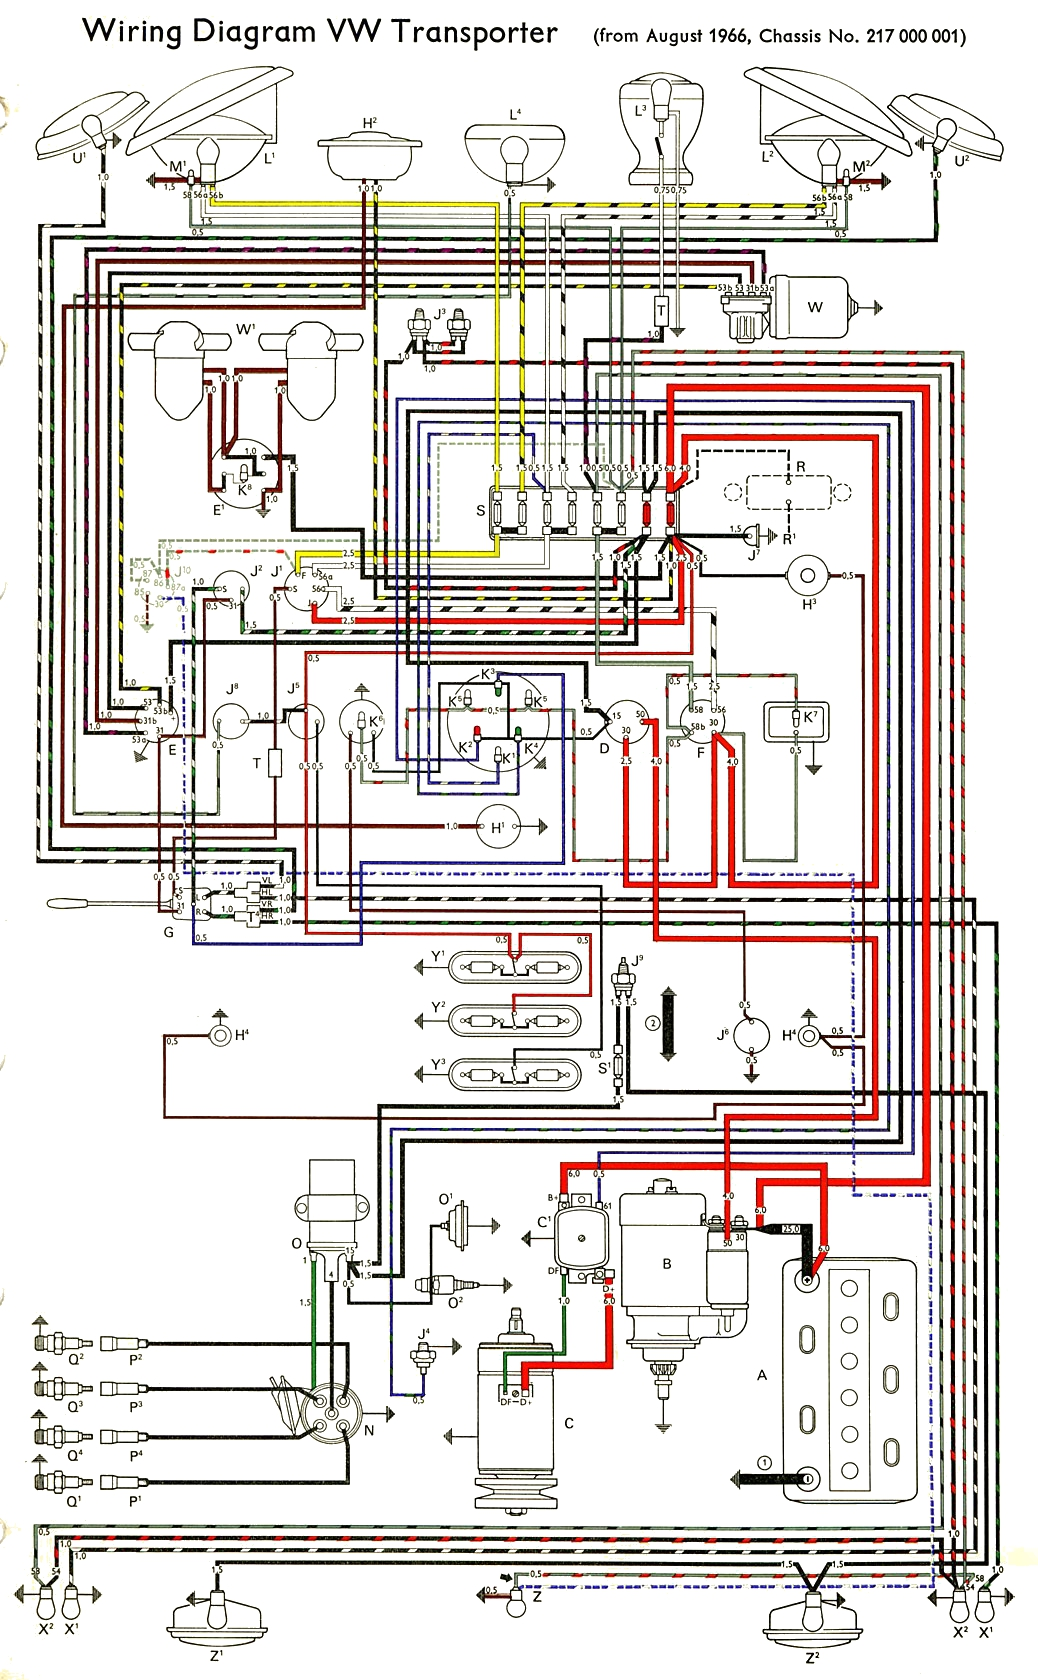 thesamba com type 2 wiring diagrams rh thesamba com 67 vw bus wiring diagram 67 vw bus wiring diagram